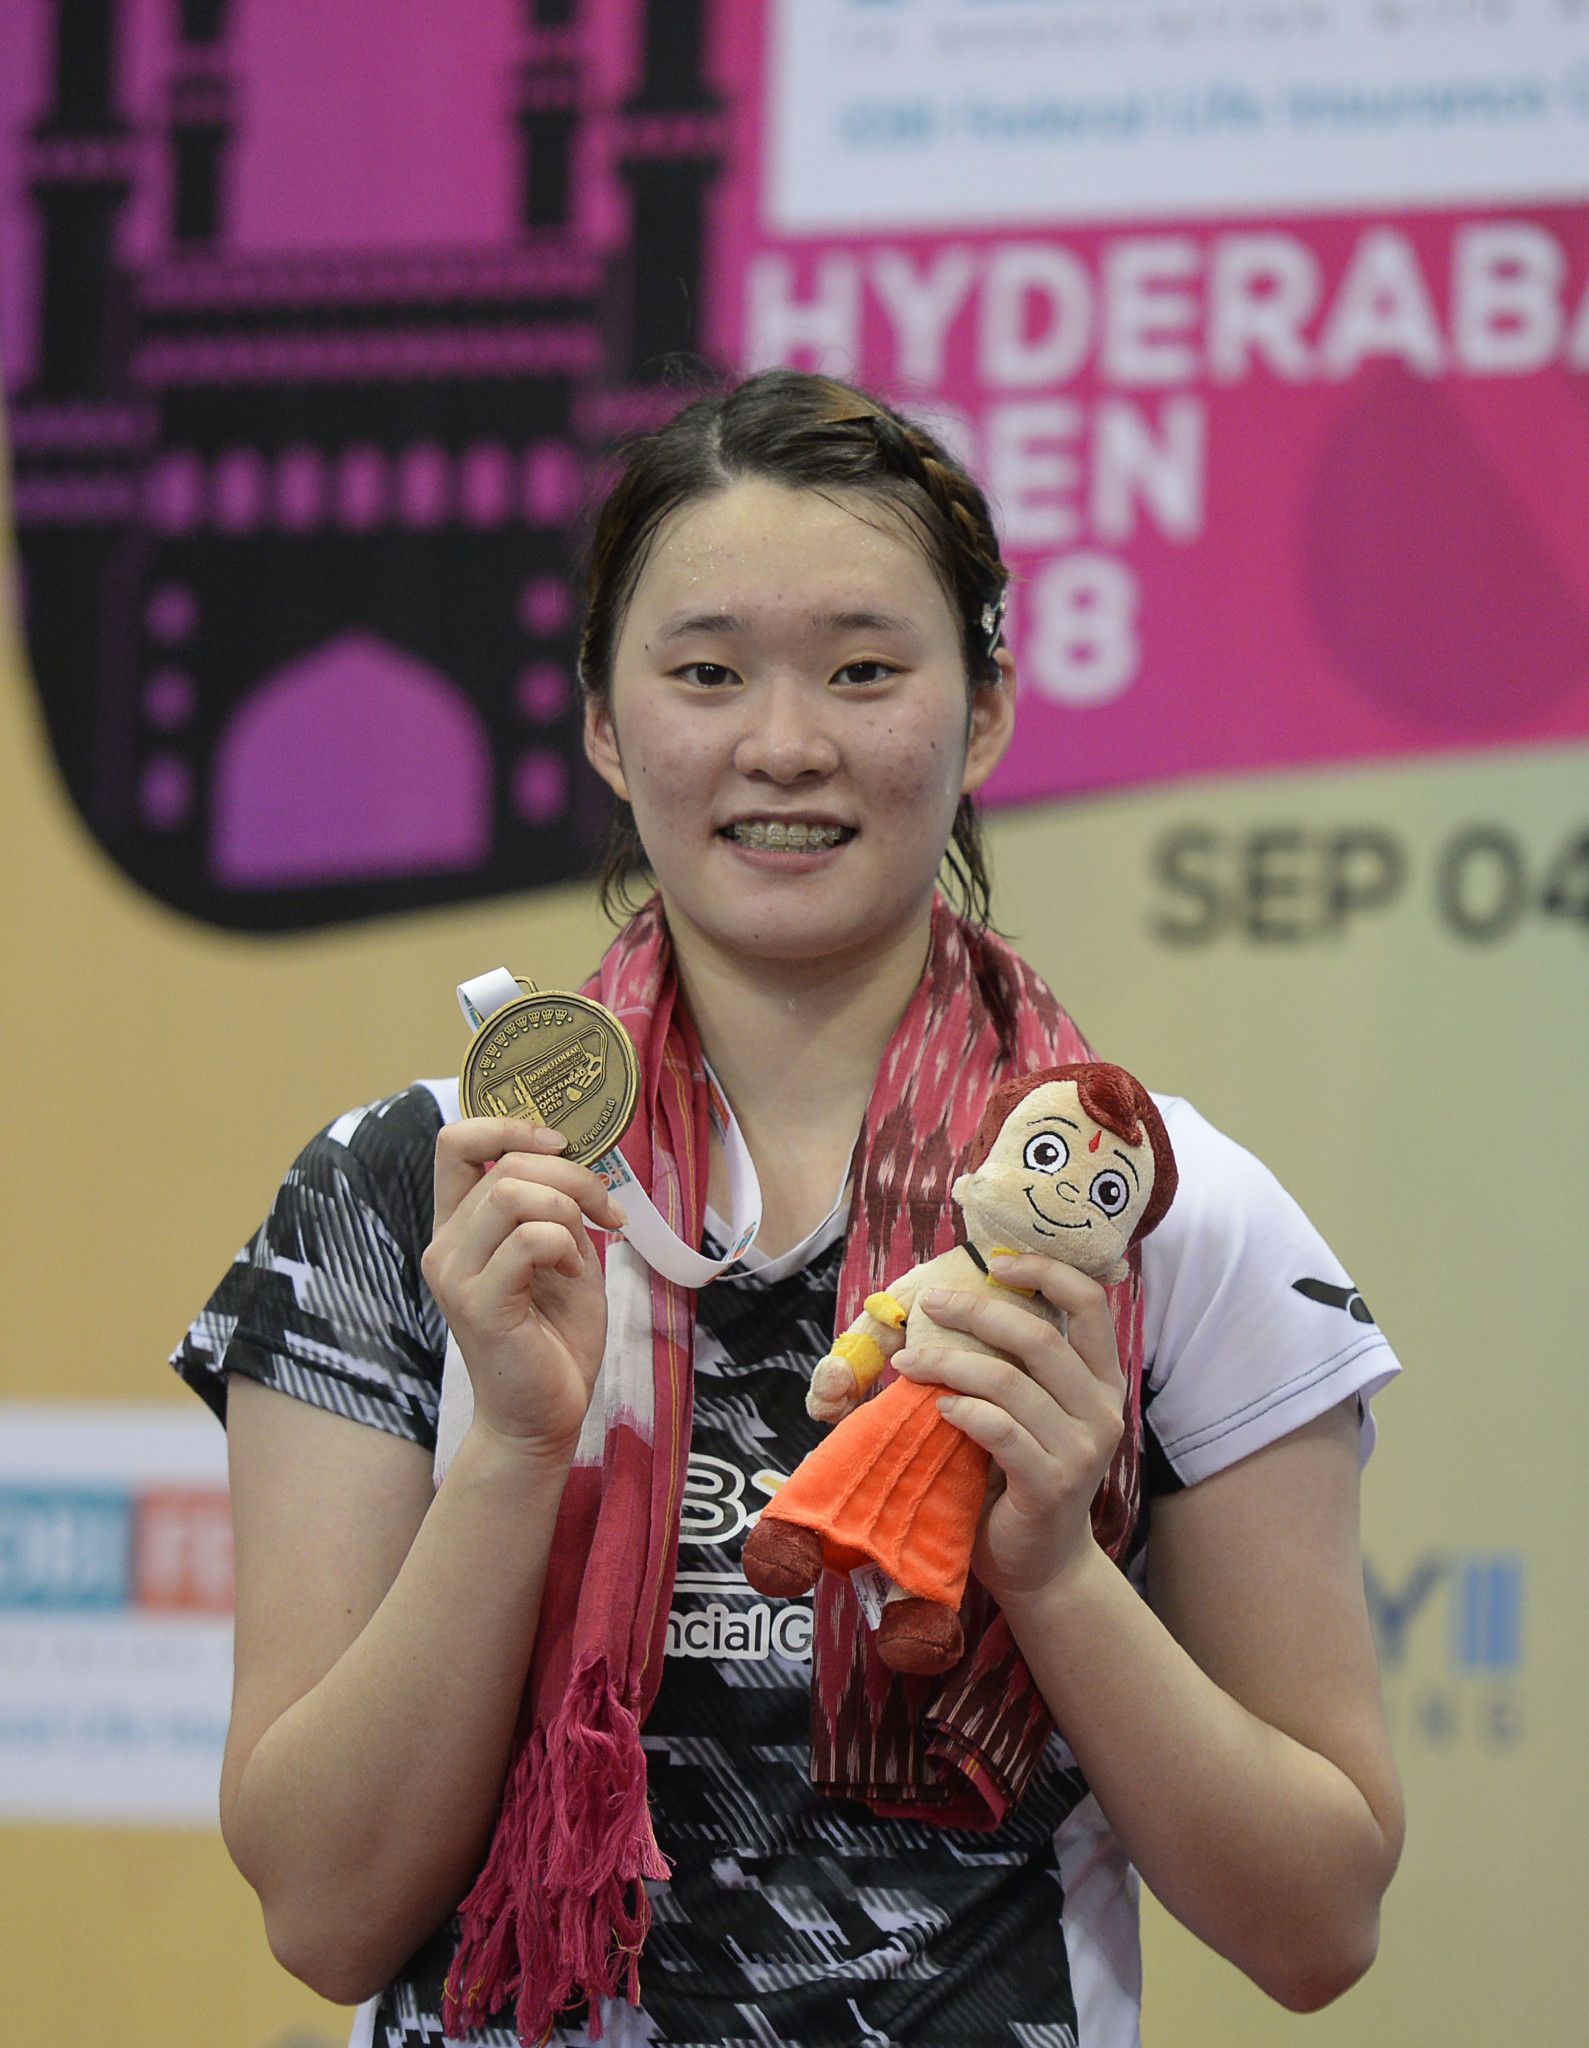 Hyderabad Open winner Ga Eun Kim came through qualifying today to reach the main women's draw at the BWF Korea Open ©Getty Images